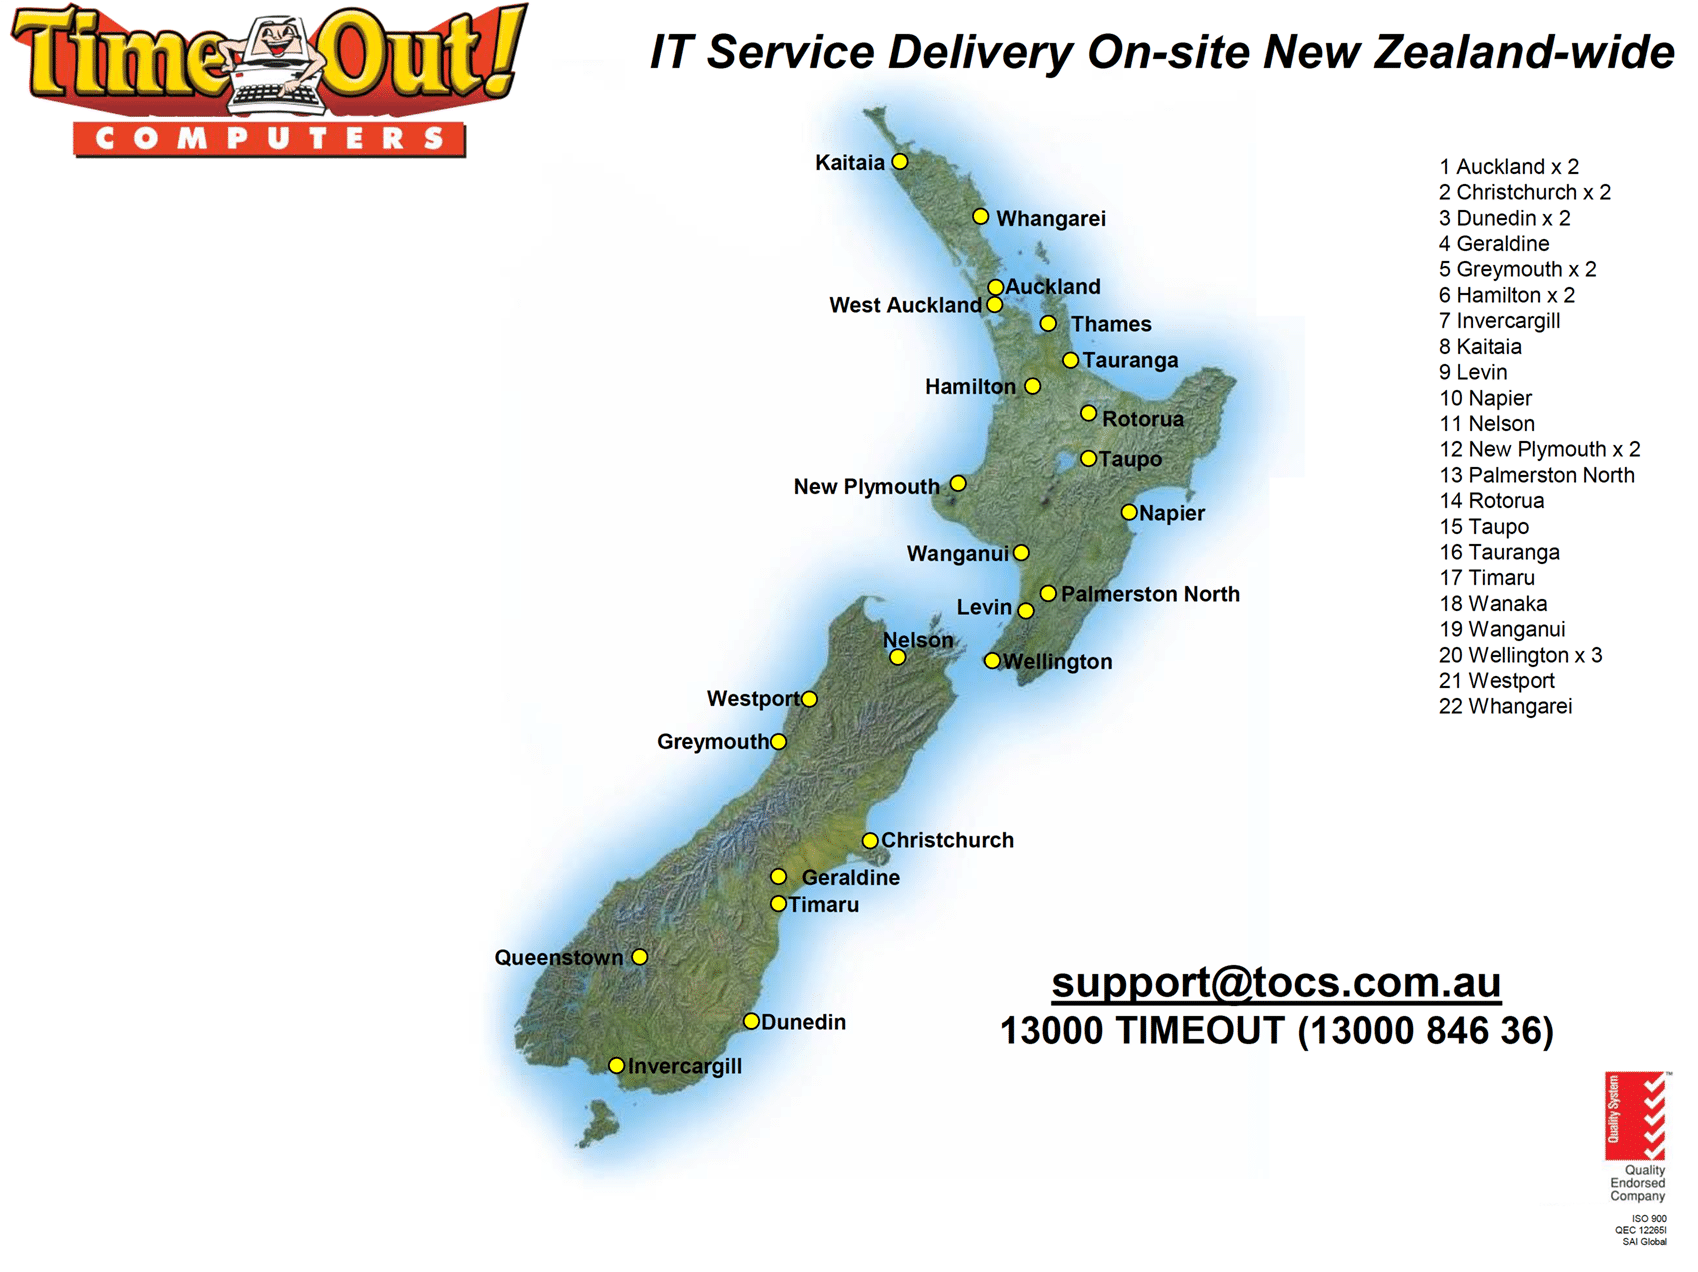 New Zealand Service Coverage Areas - Time Out! Computers